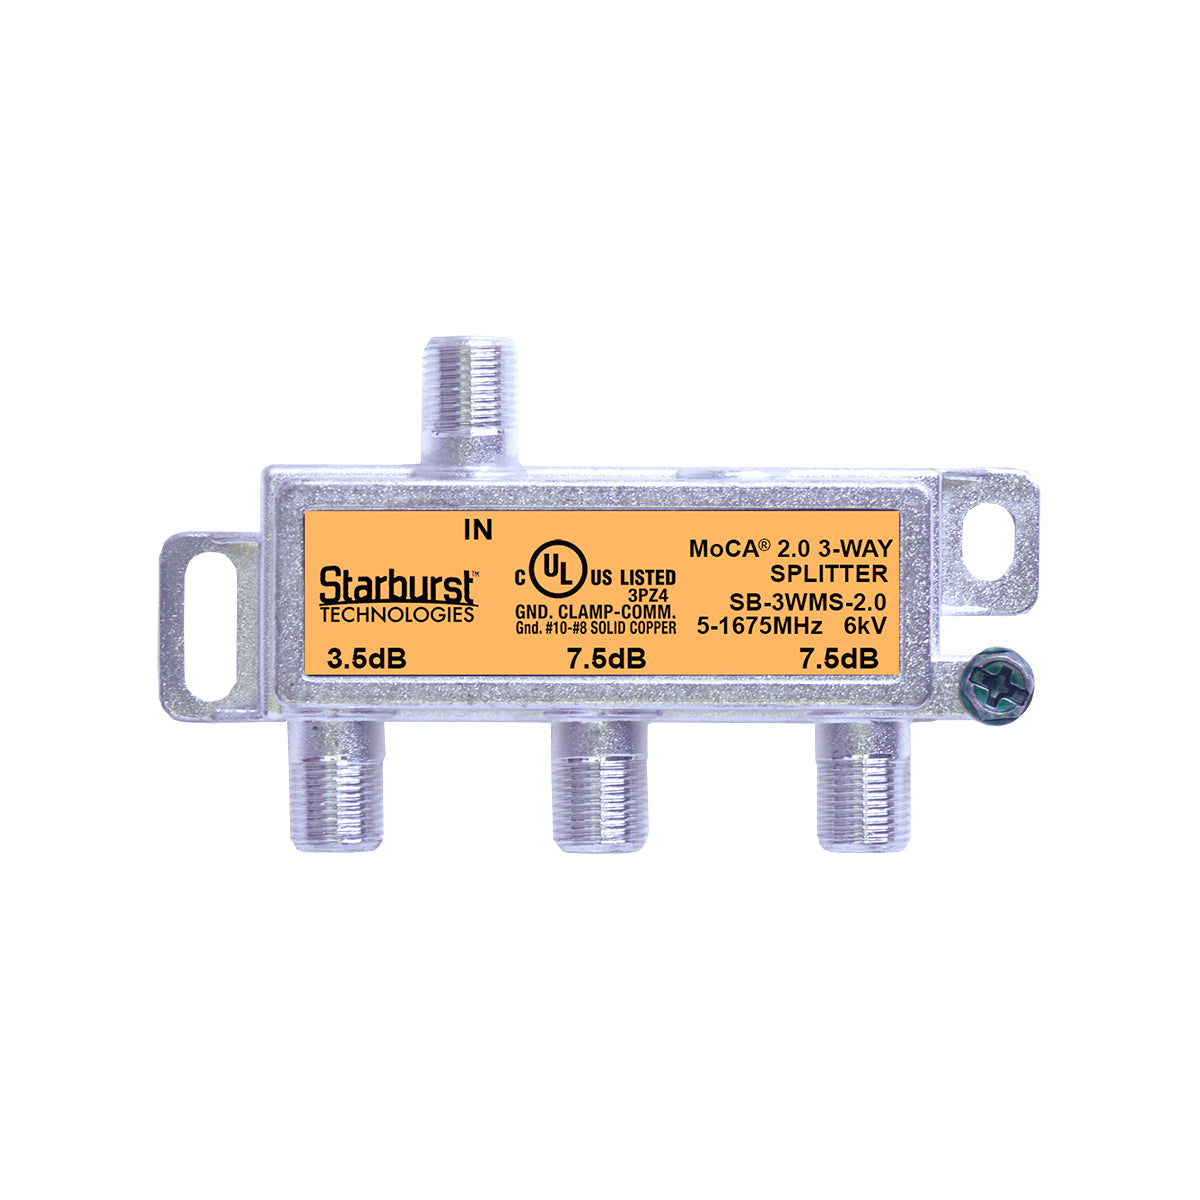 SB-3WMS-2.0 - 3 Way Horizontal Coaxial Cable Splitter, 6Kv Rated, 5-1675 MHz Wide Band For Ethernet Over Coax Universal Home Networking, Compatible With 1GHz, MoCA 2.0, HPNA and DOCSIS 3.1 Networks